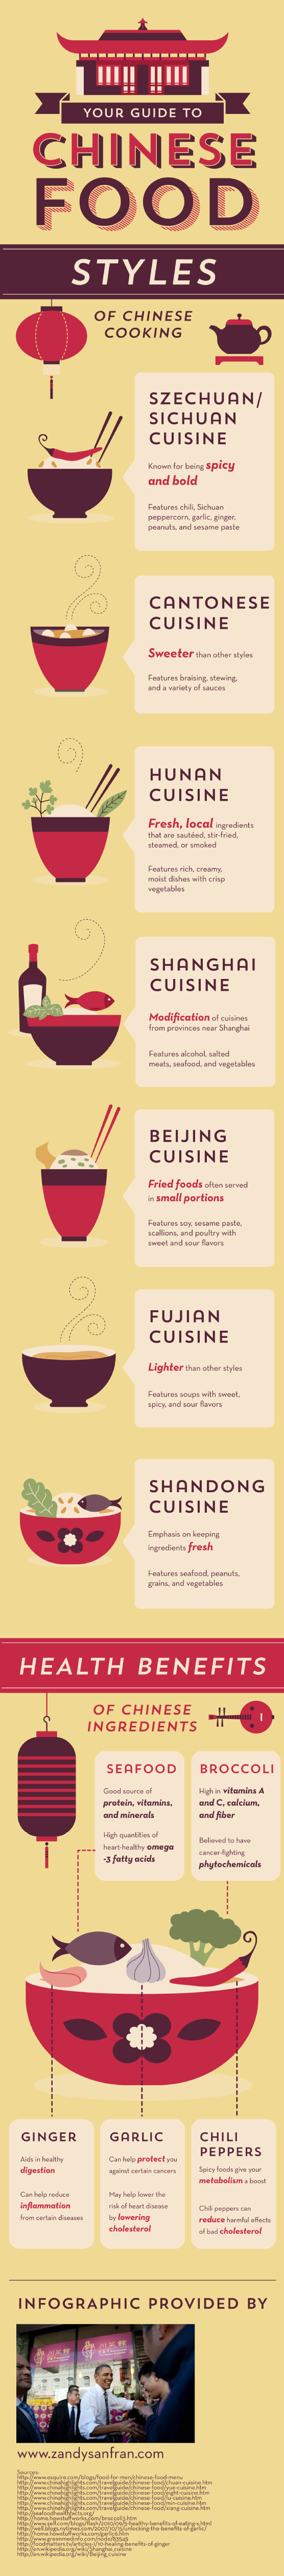 2013-08-27-yourguidetochinesefood_520d6c61d0720.png